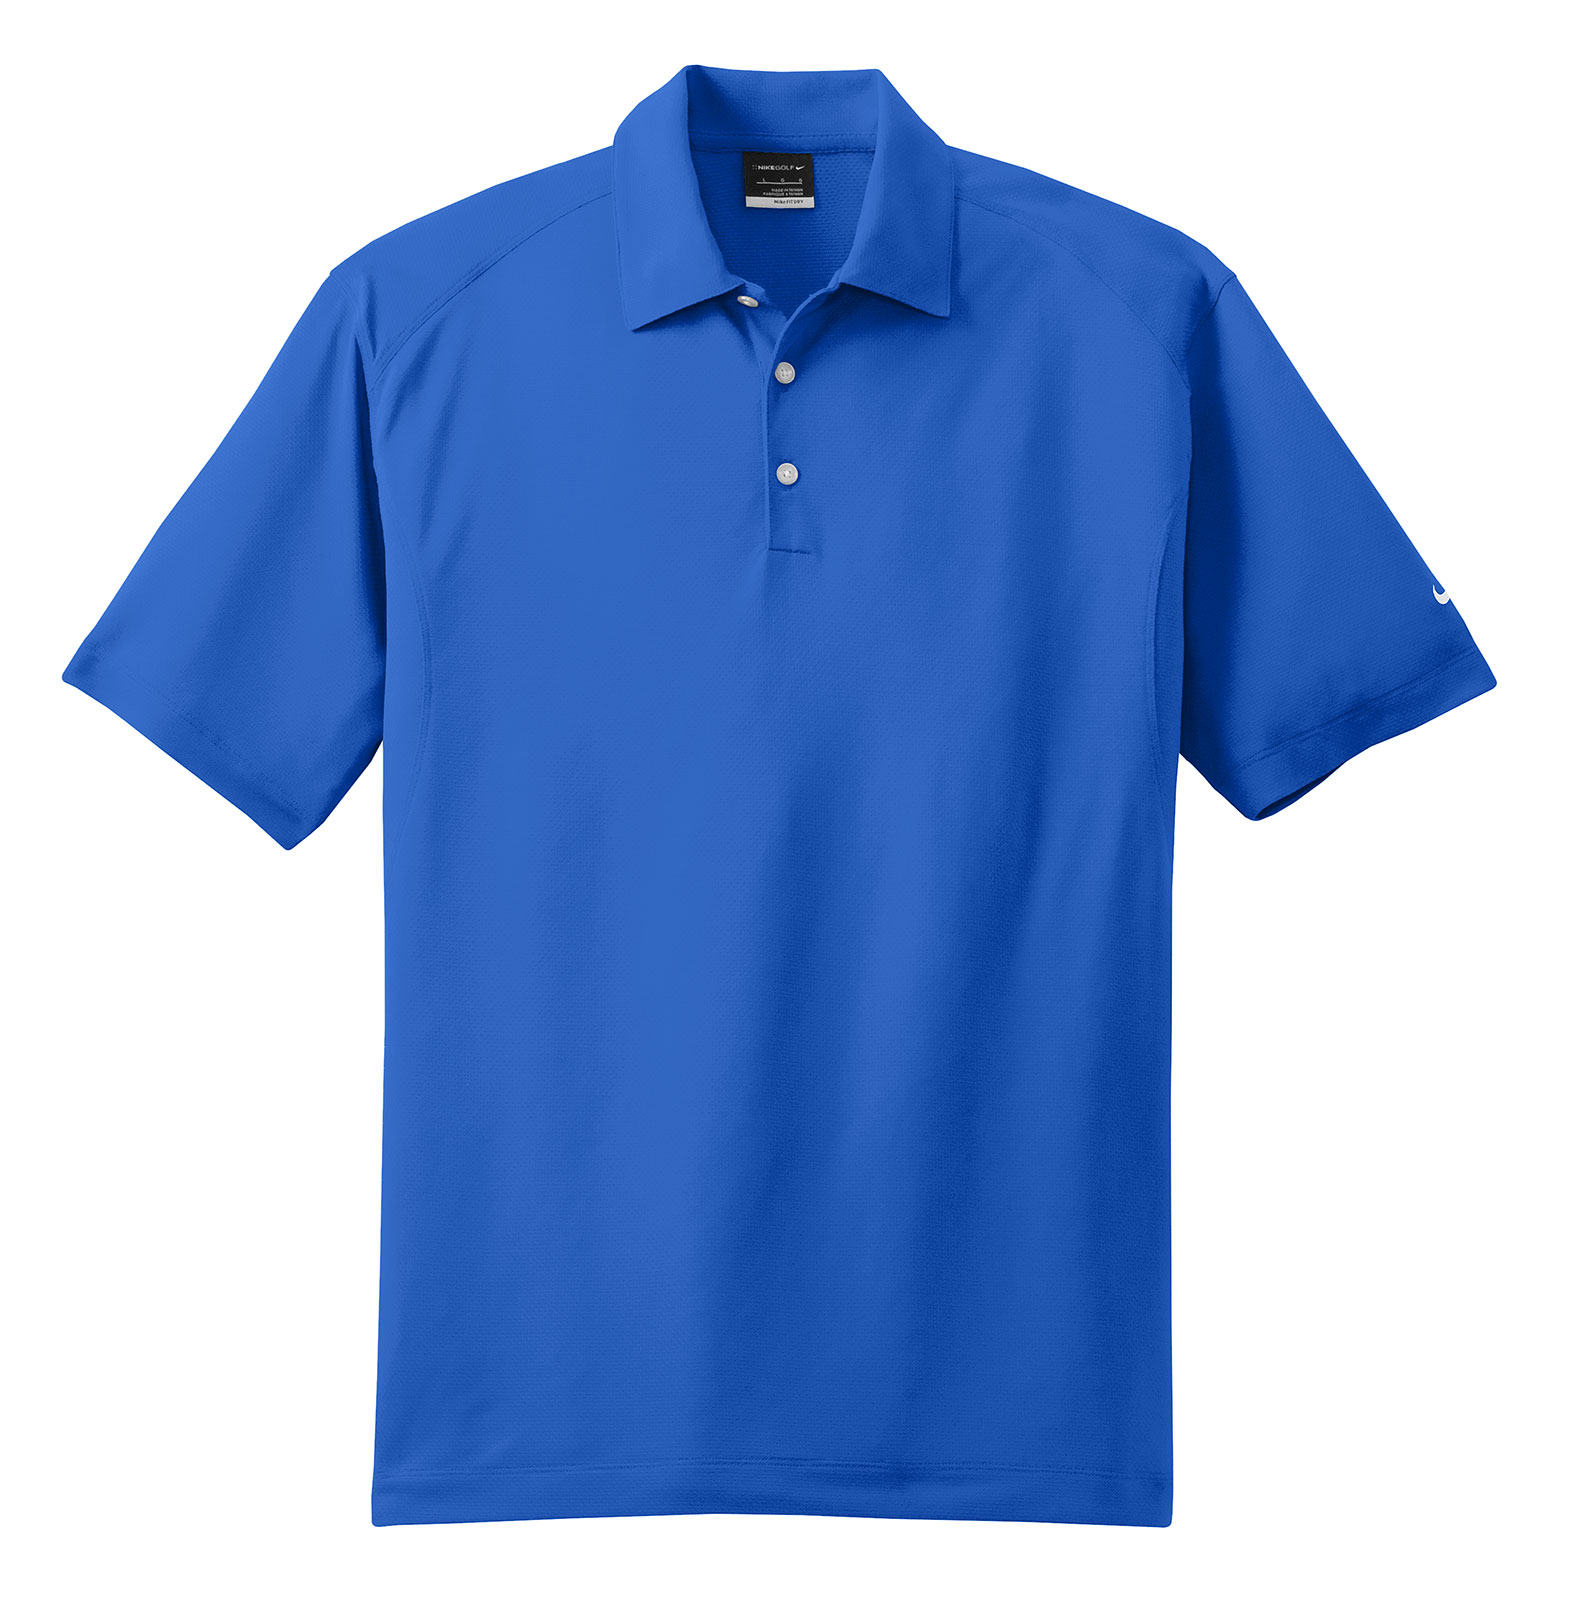 NIKE Golf Mens Dri-Fit Mini Texture Sport Shirt